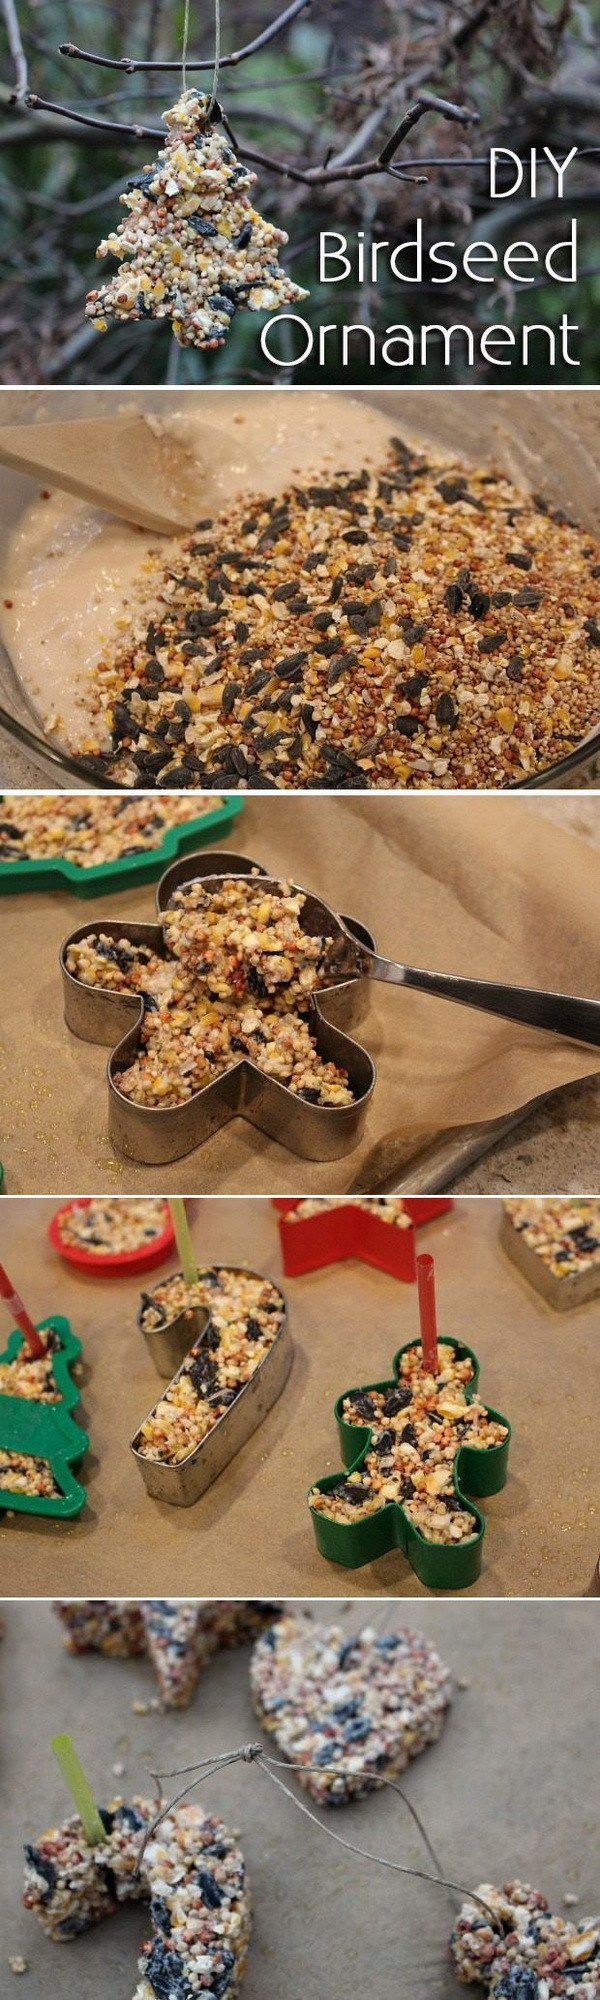 Homemade Birdseed Christmas Ornament. An adorabel craft that your kids will have great fun to make and the birds will enjoy eating them. Easy and Fun DIY Christmas crafts for You and Your Kids to Have Fun.